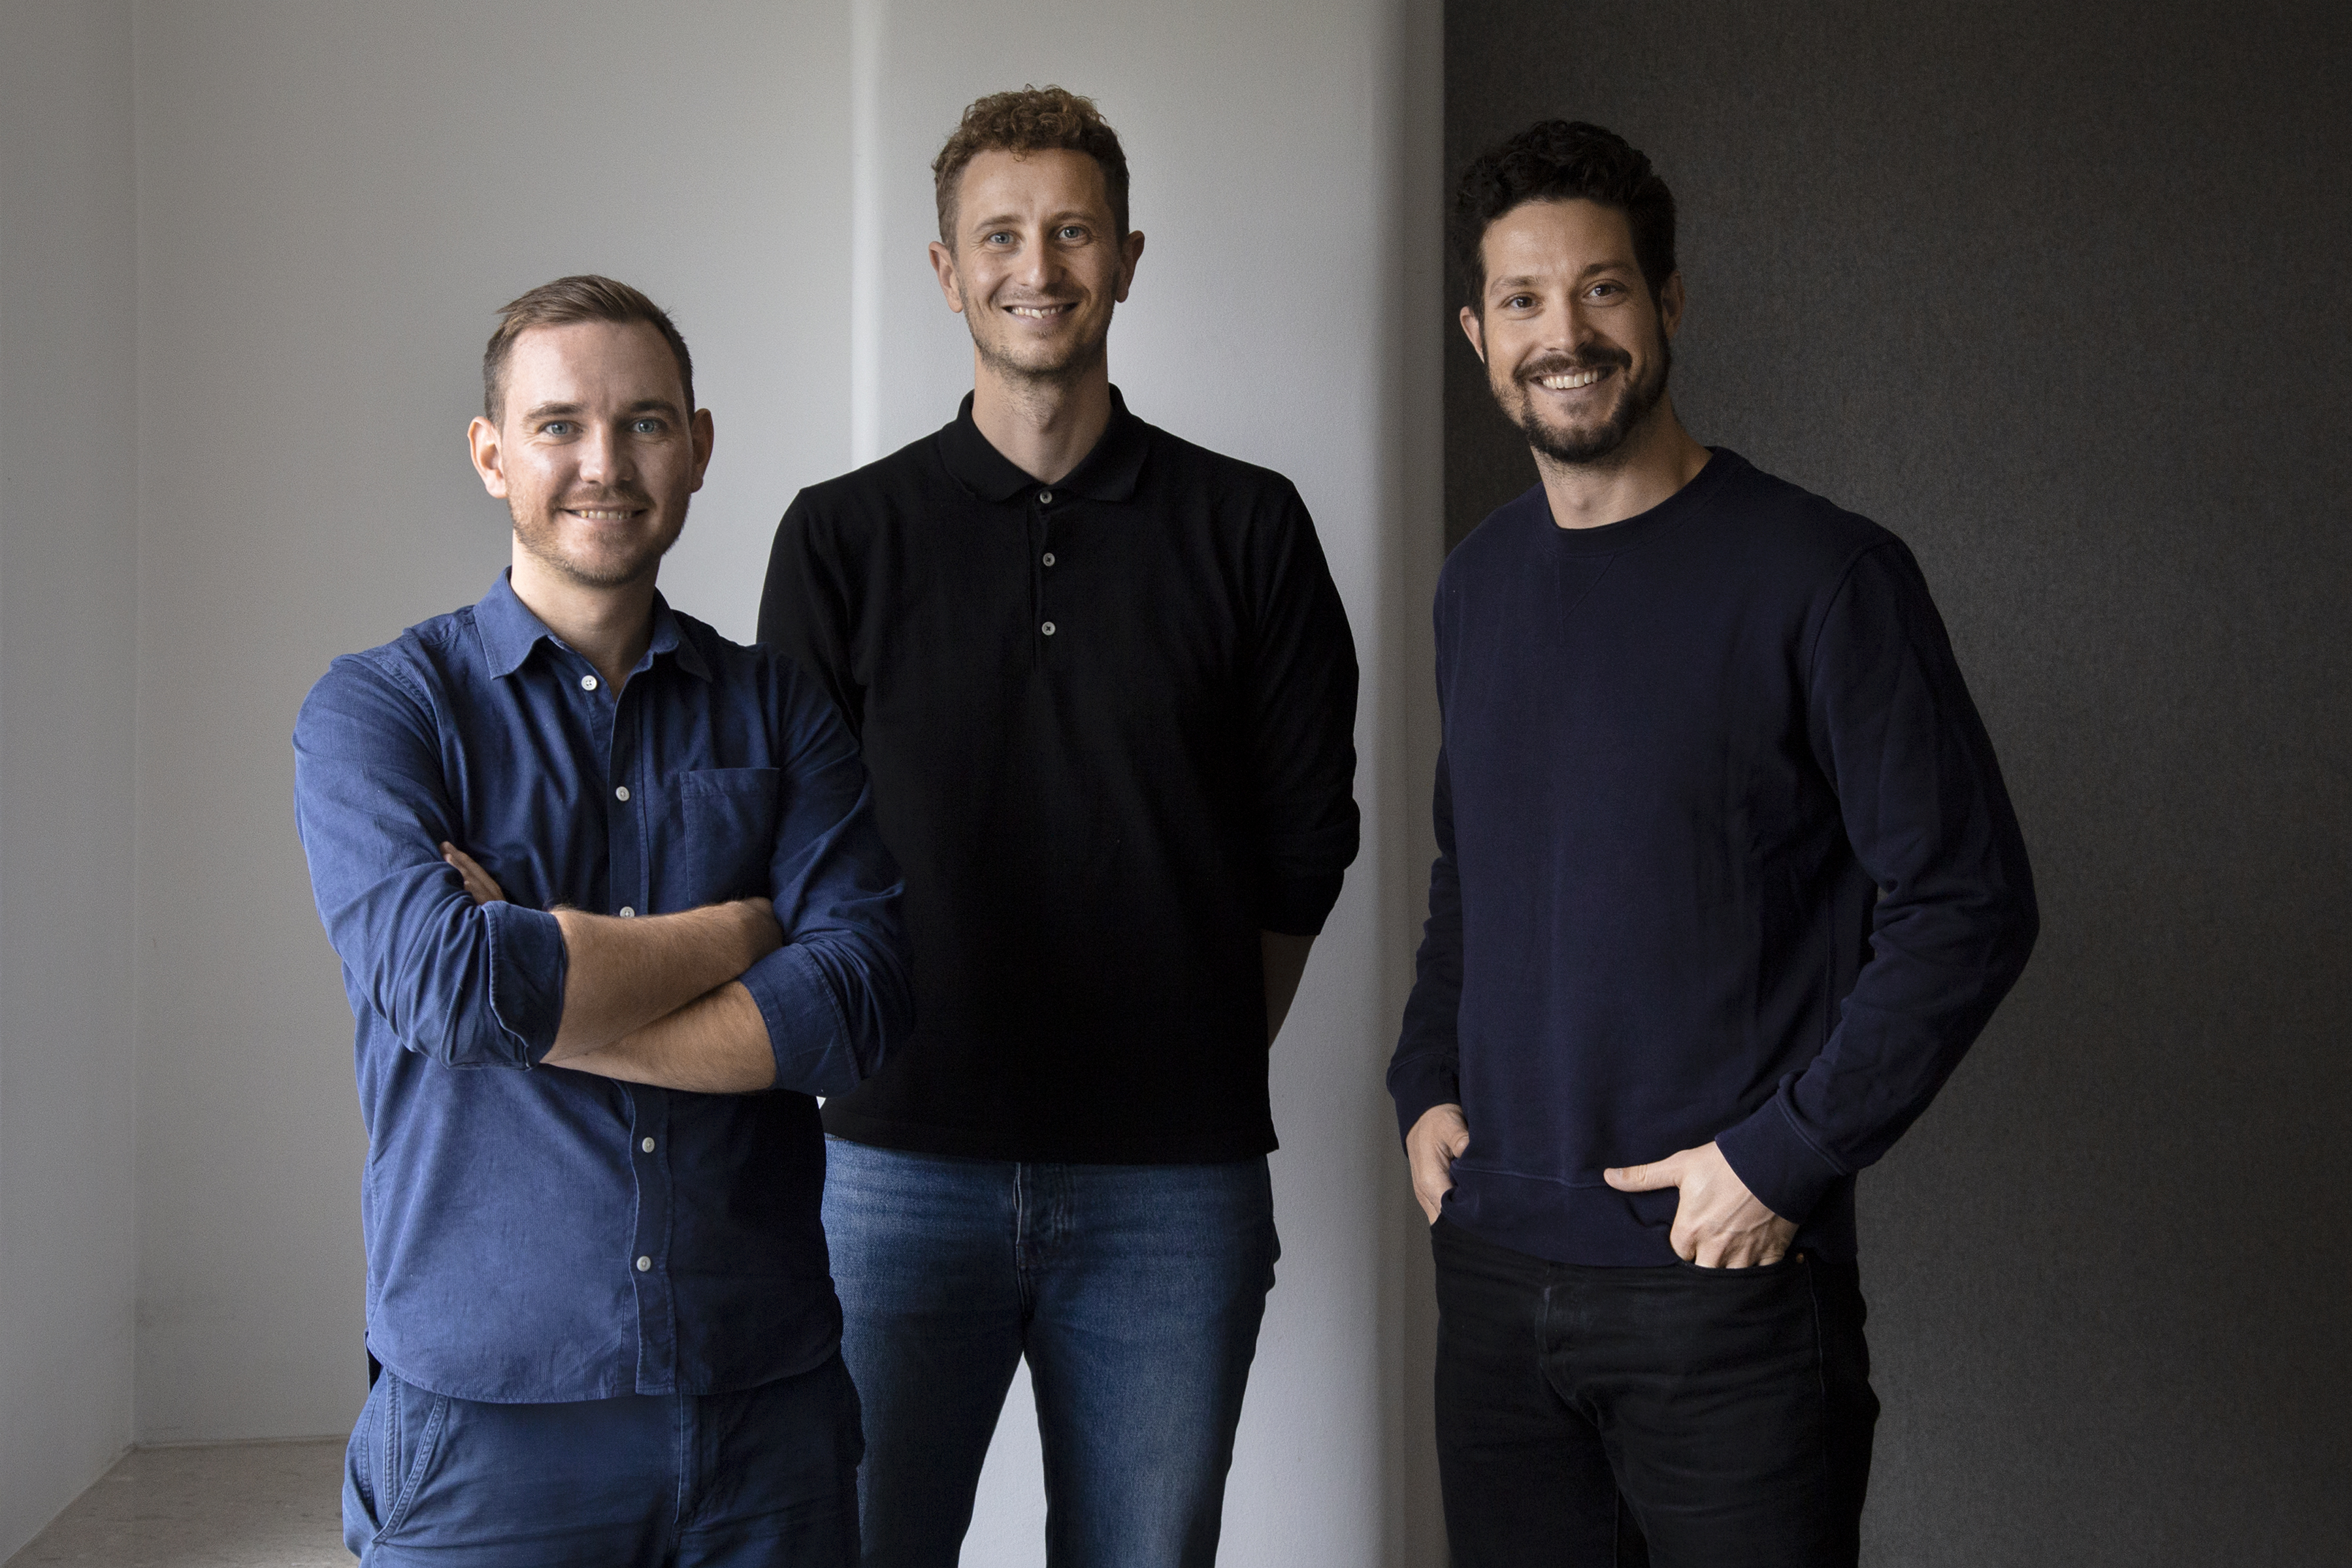 Three men from a design agency